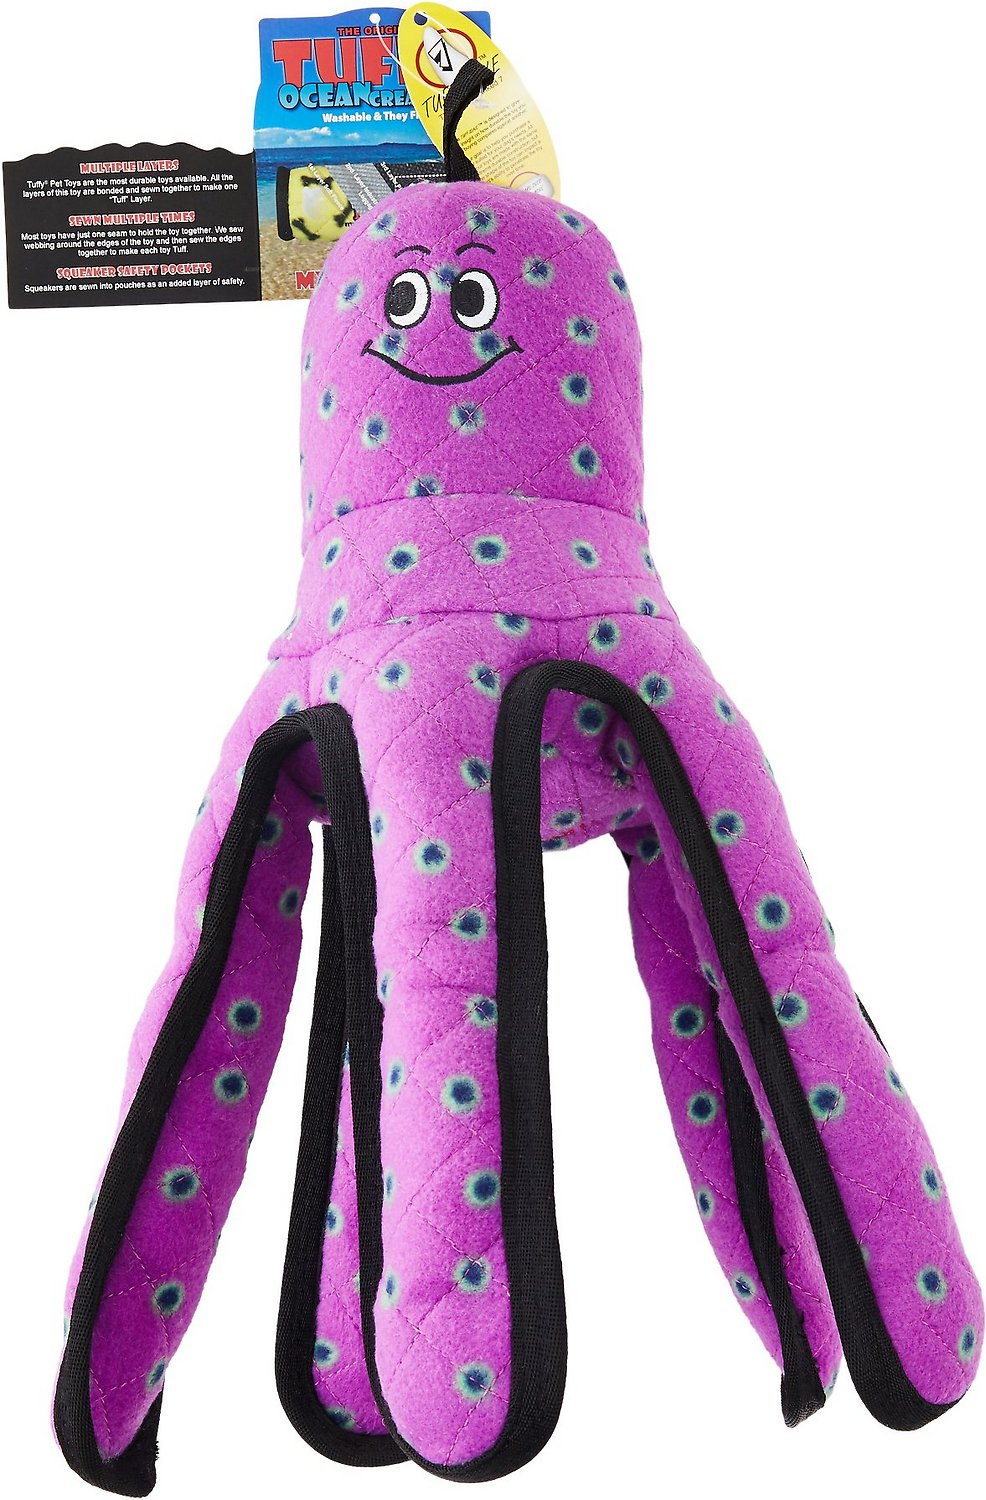 Tuffy's Ocean Creatures Purple Pete Octopus Dog Toy Image